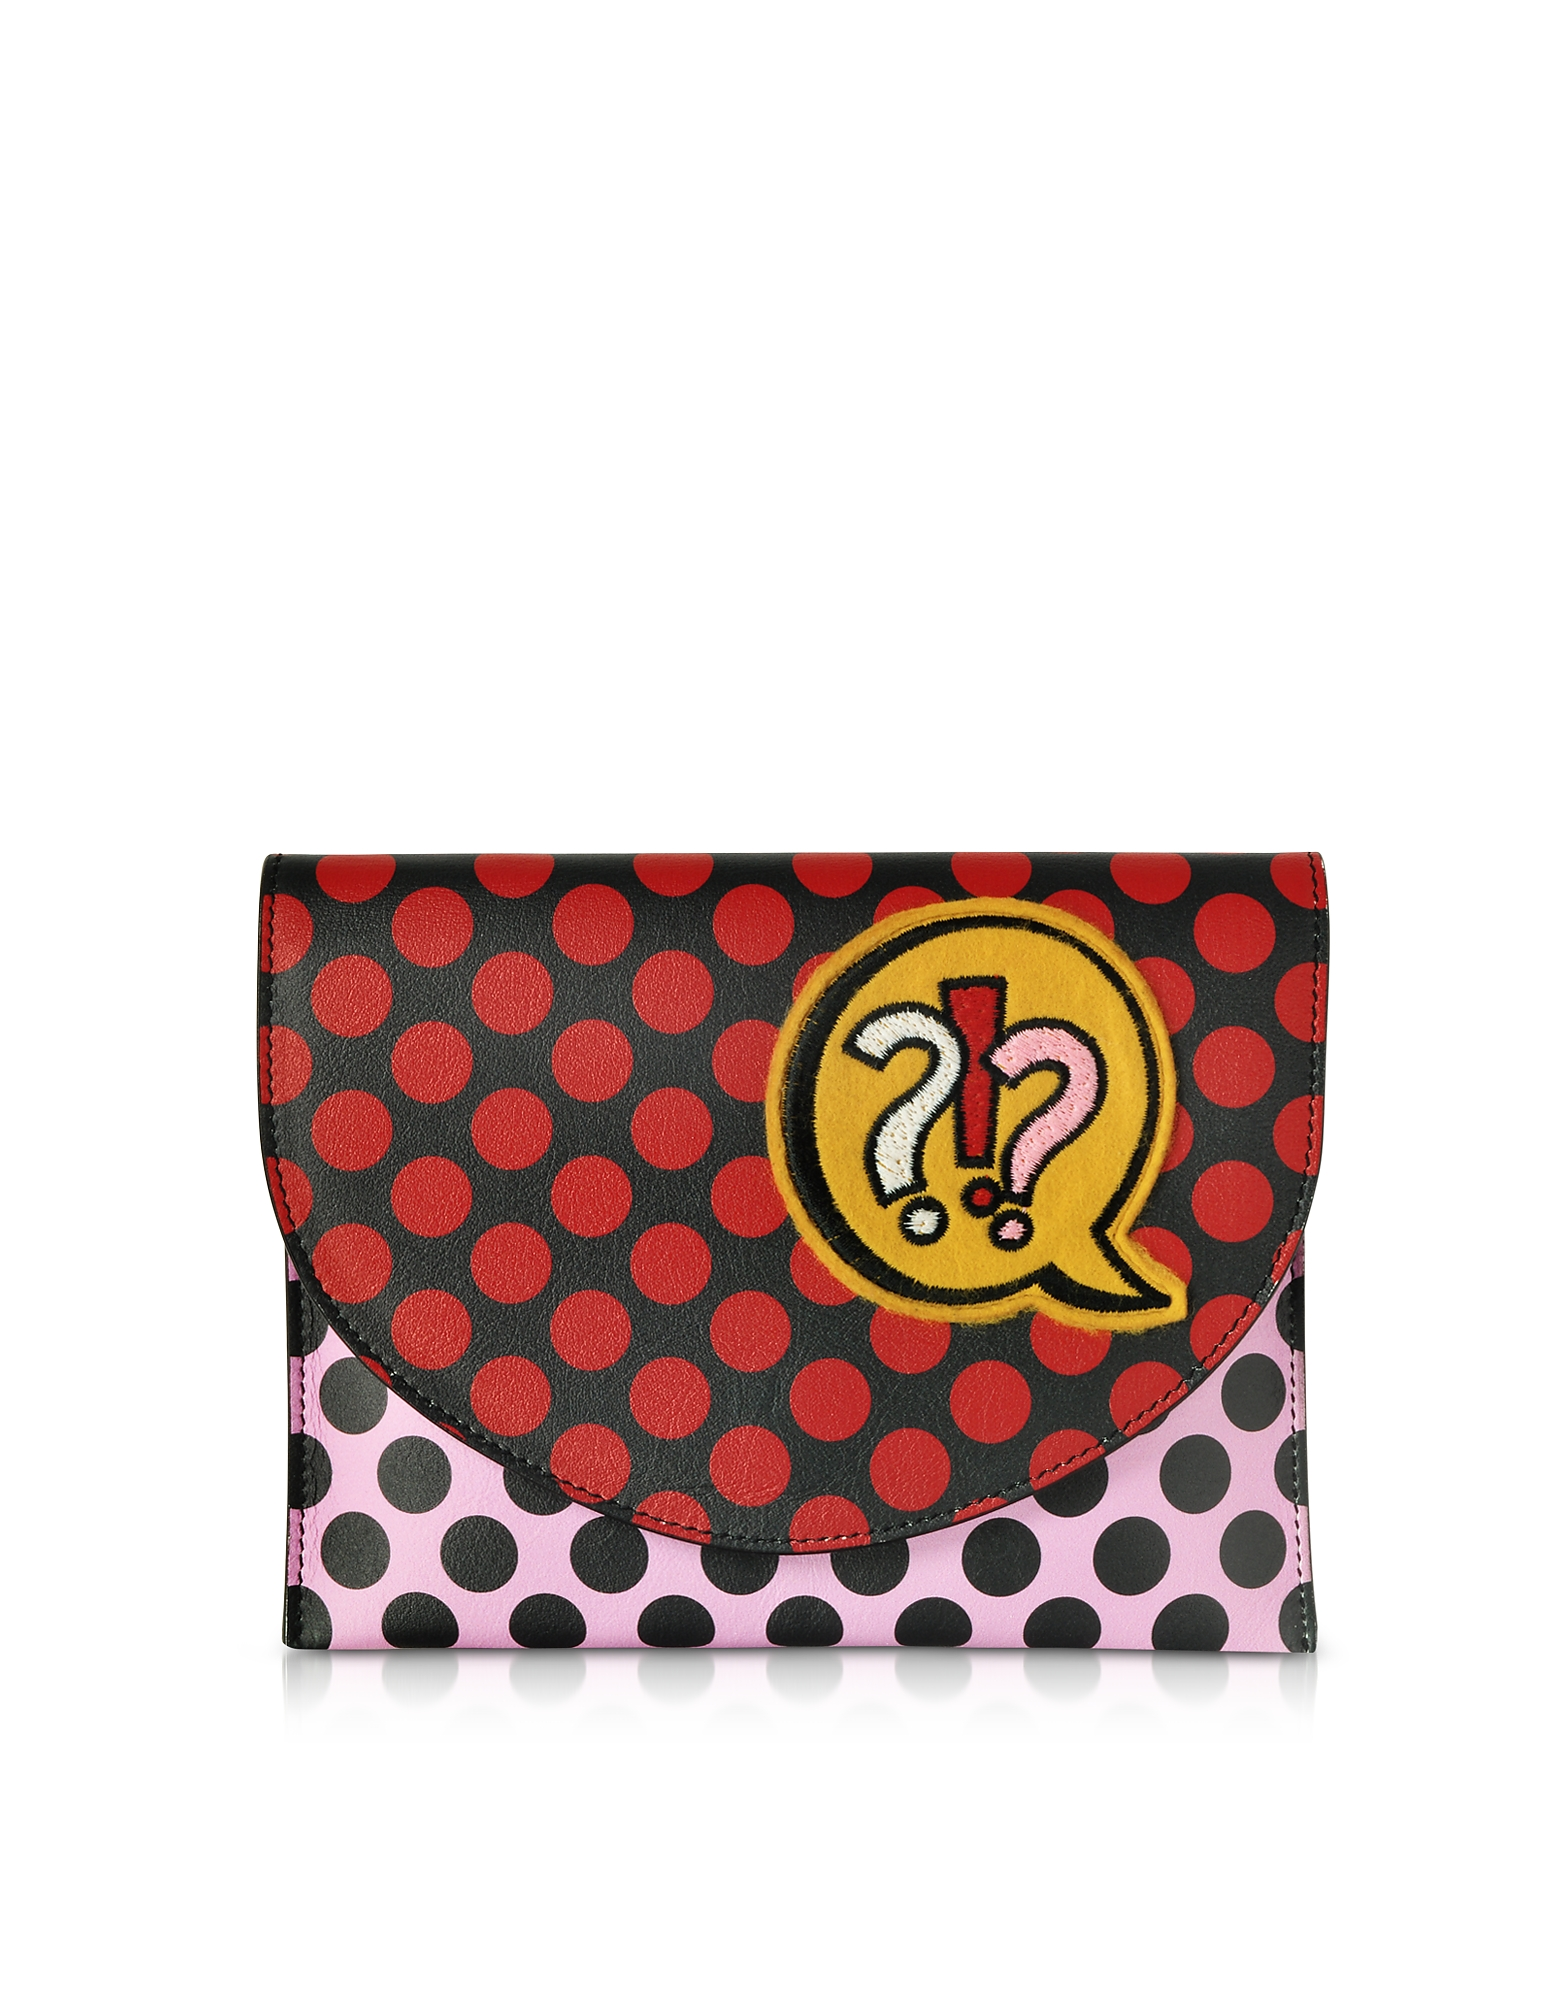 Miracle Pop Clutch in Pelle Colorblock Stampa Pois